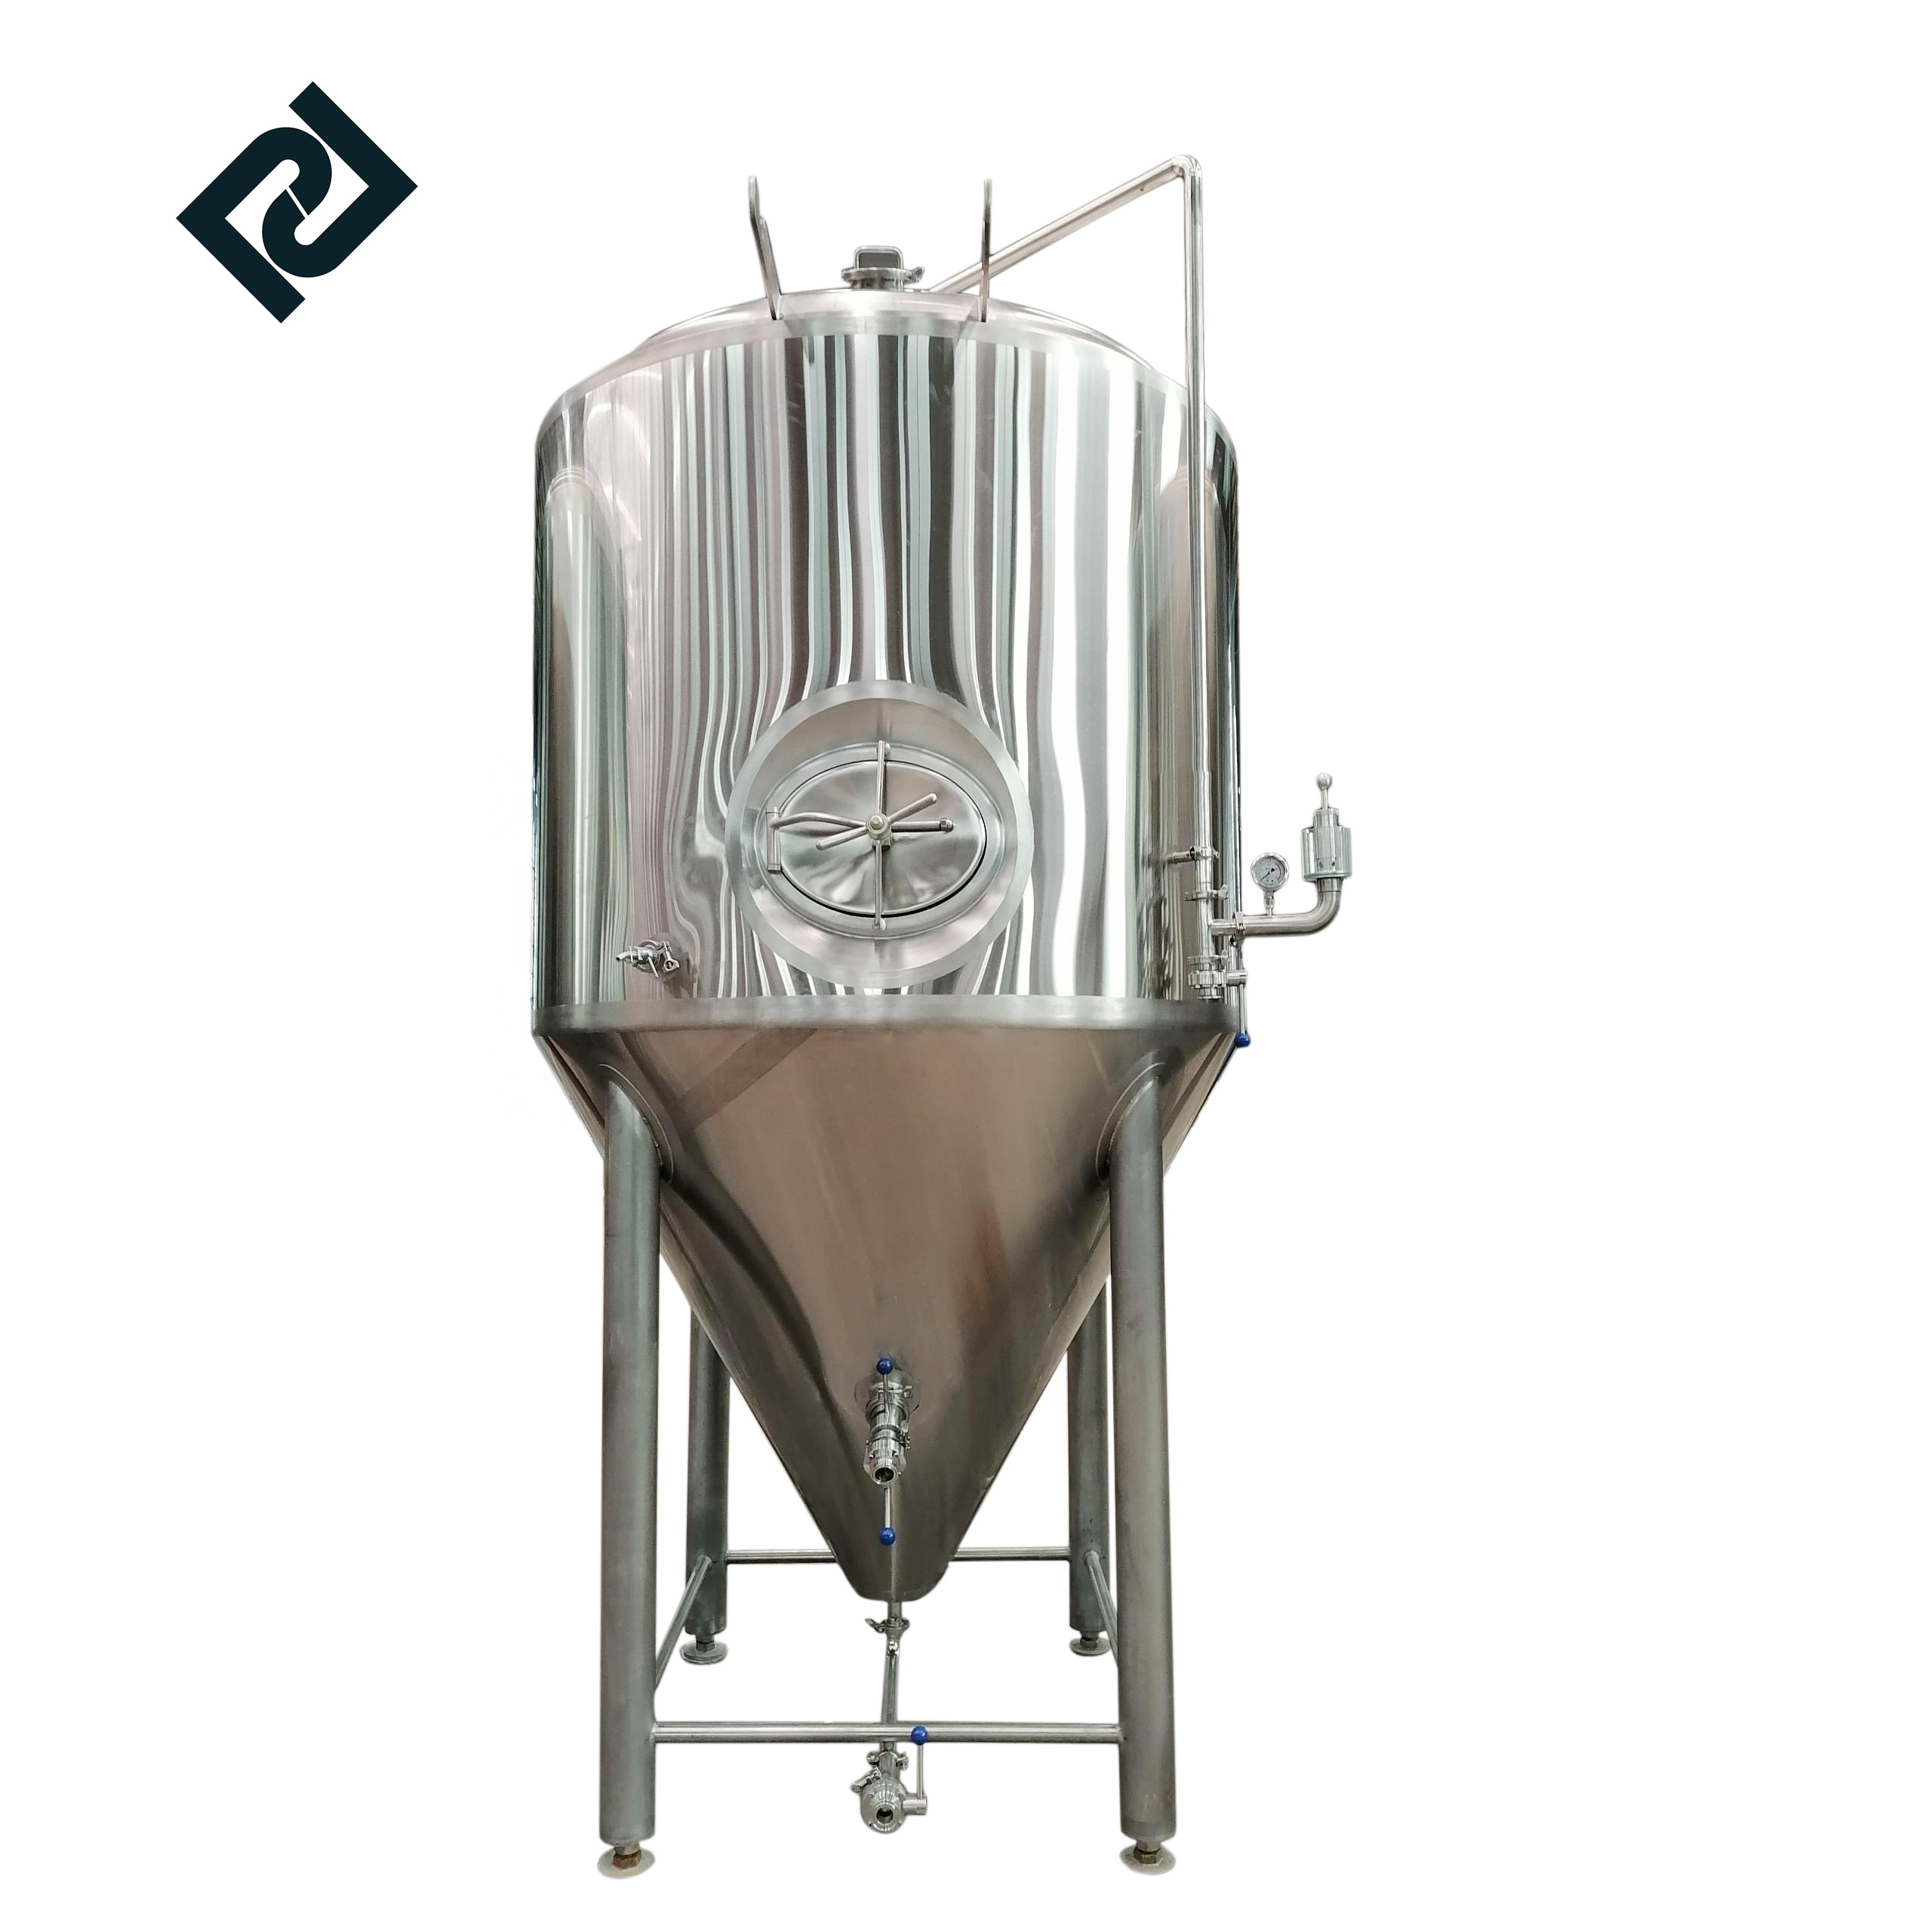 One of Hottest for 3 Bbl Complete Micro Brewery System - 3bbl 5bbl 10bbl 15bbl 20bbl micro beer brewery fermentation equipment commercial beer brewing equipment – Pijiang